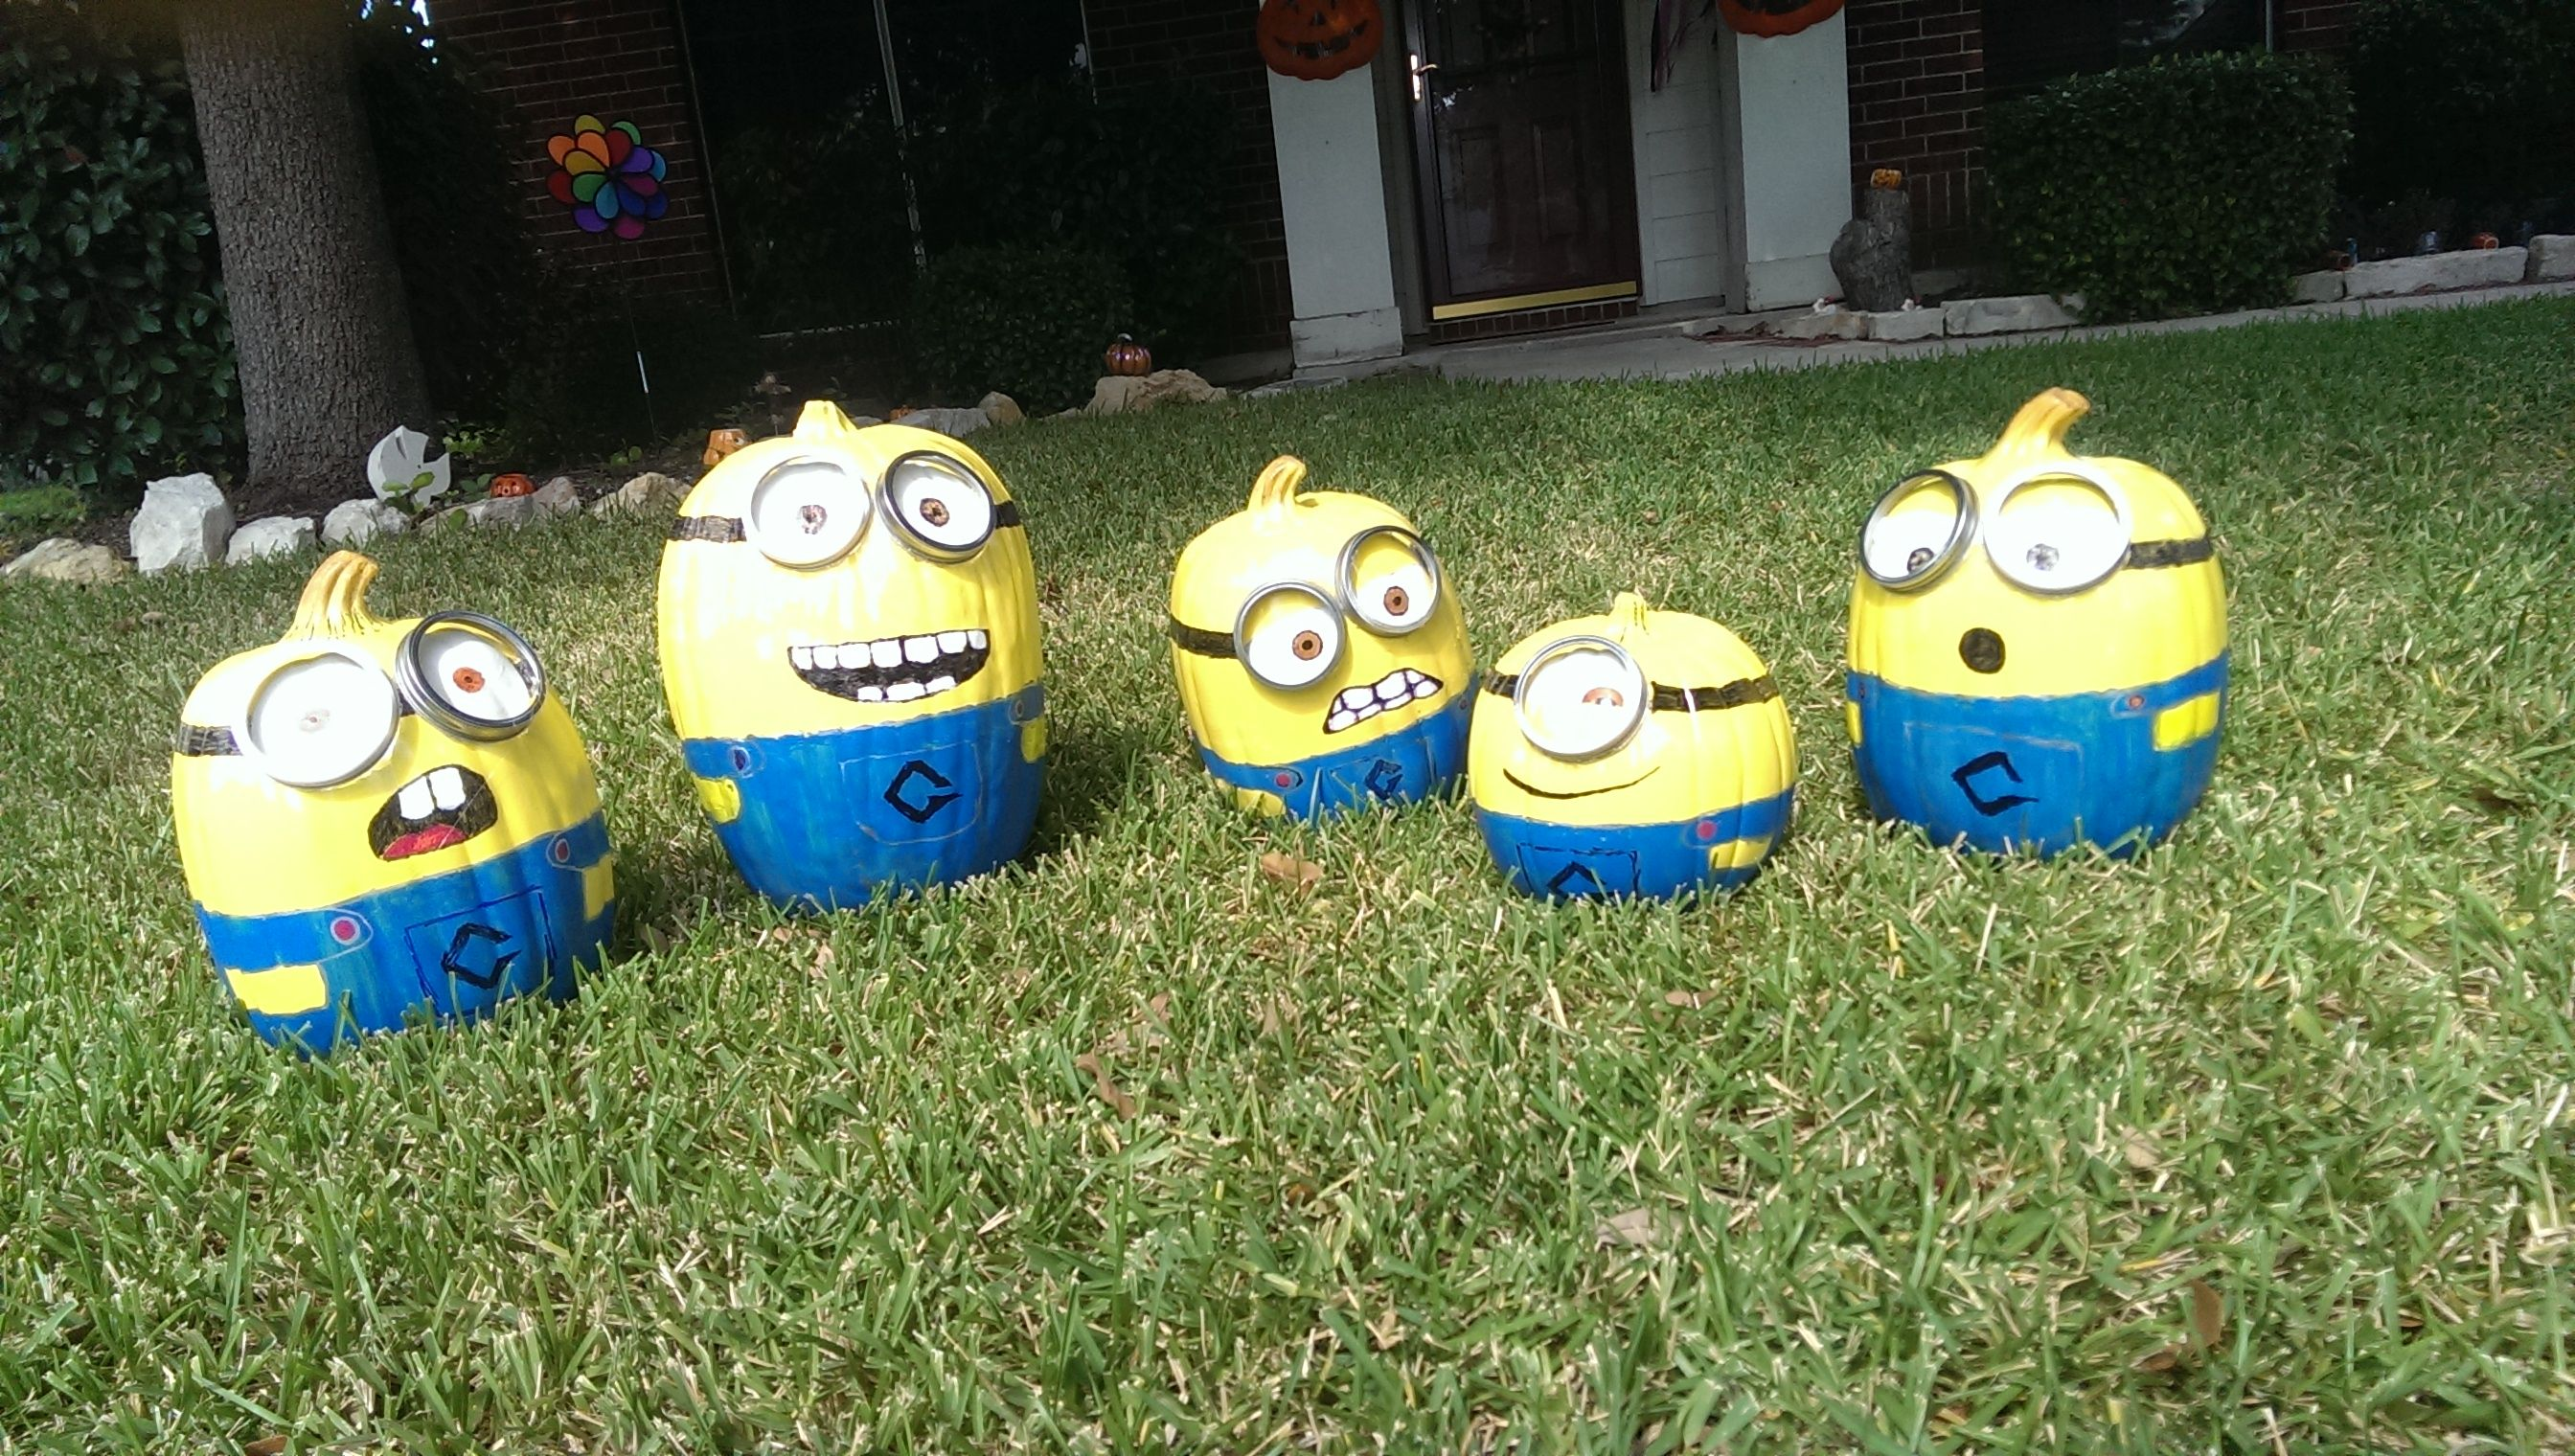 Our minions for Halloween. They will reside in the Minion Garden for a while.